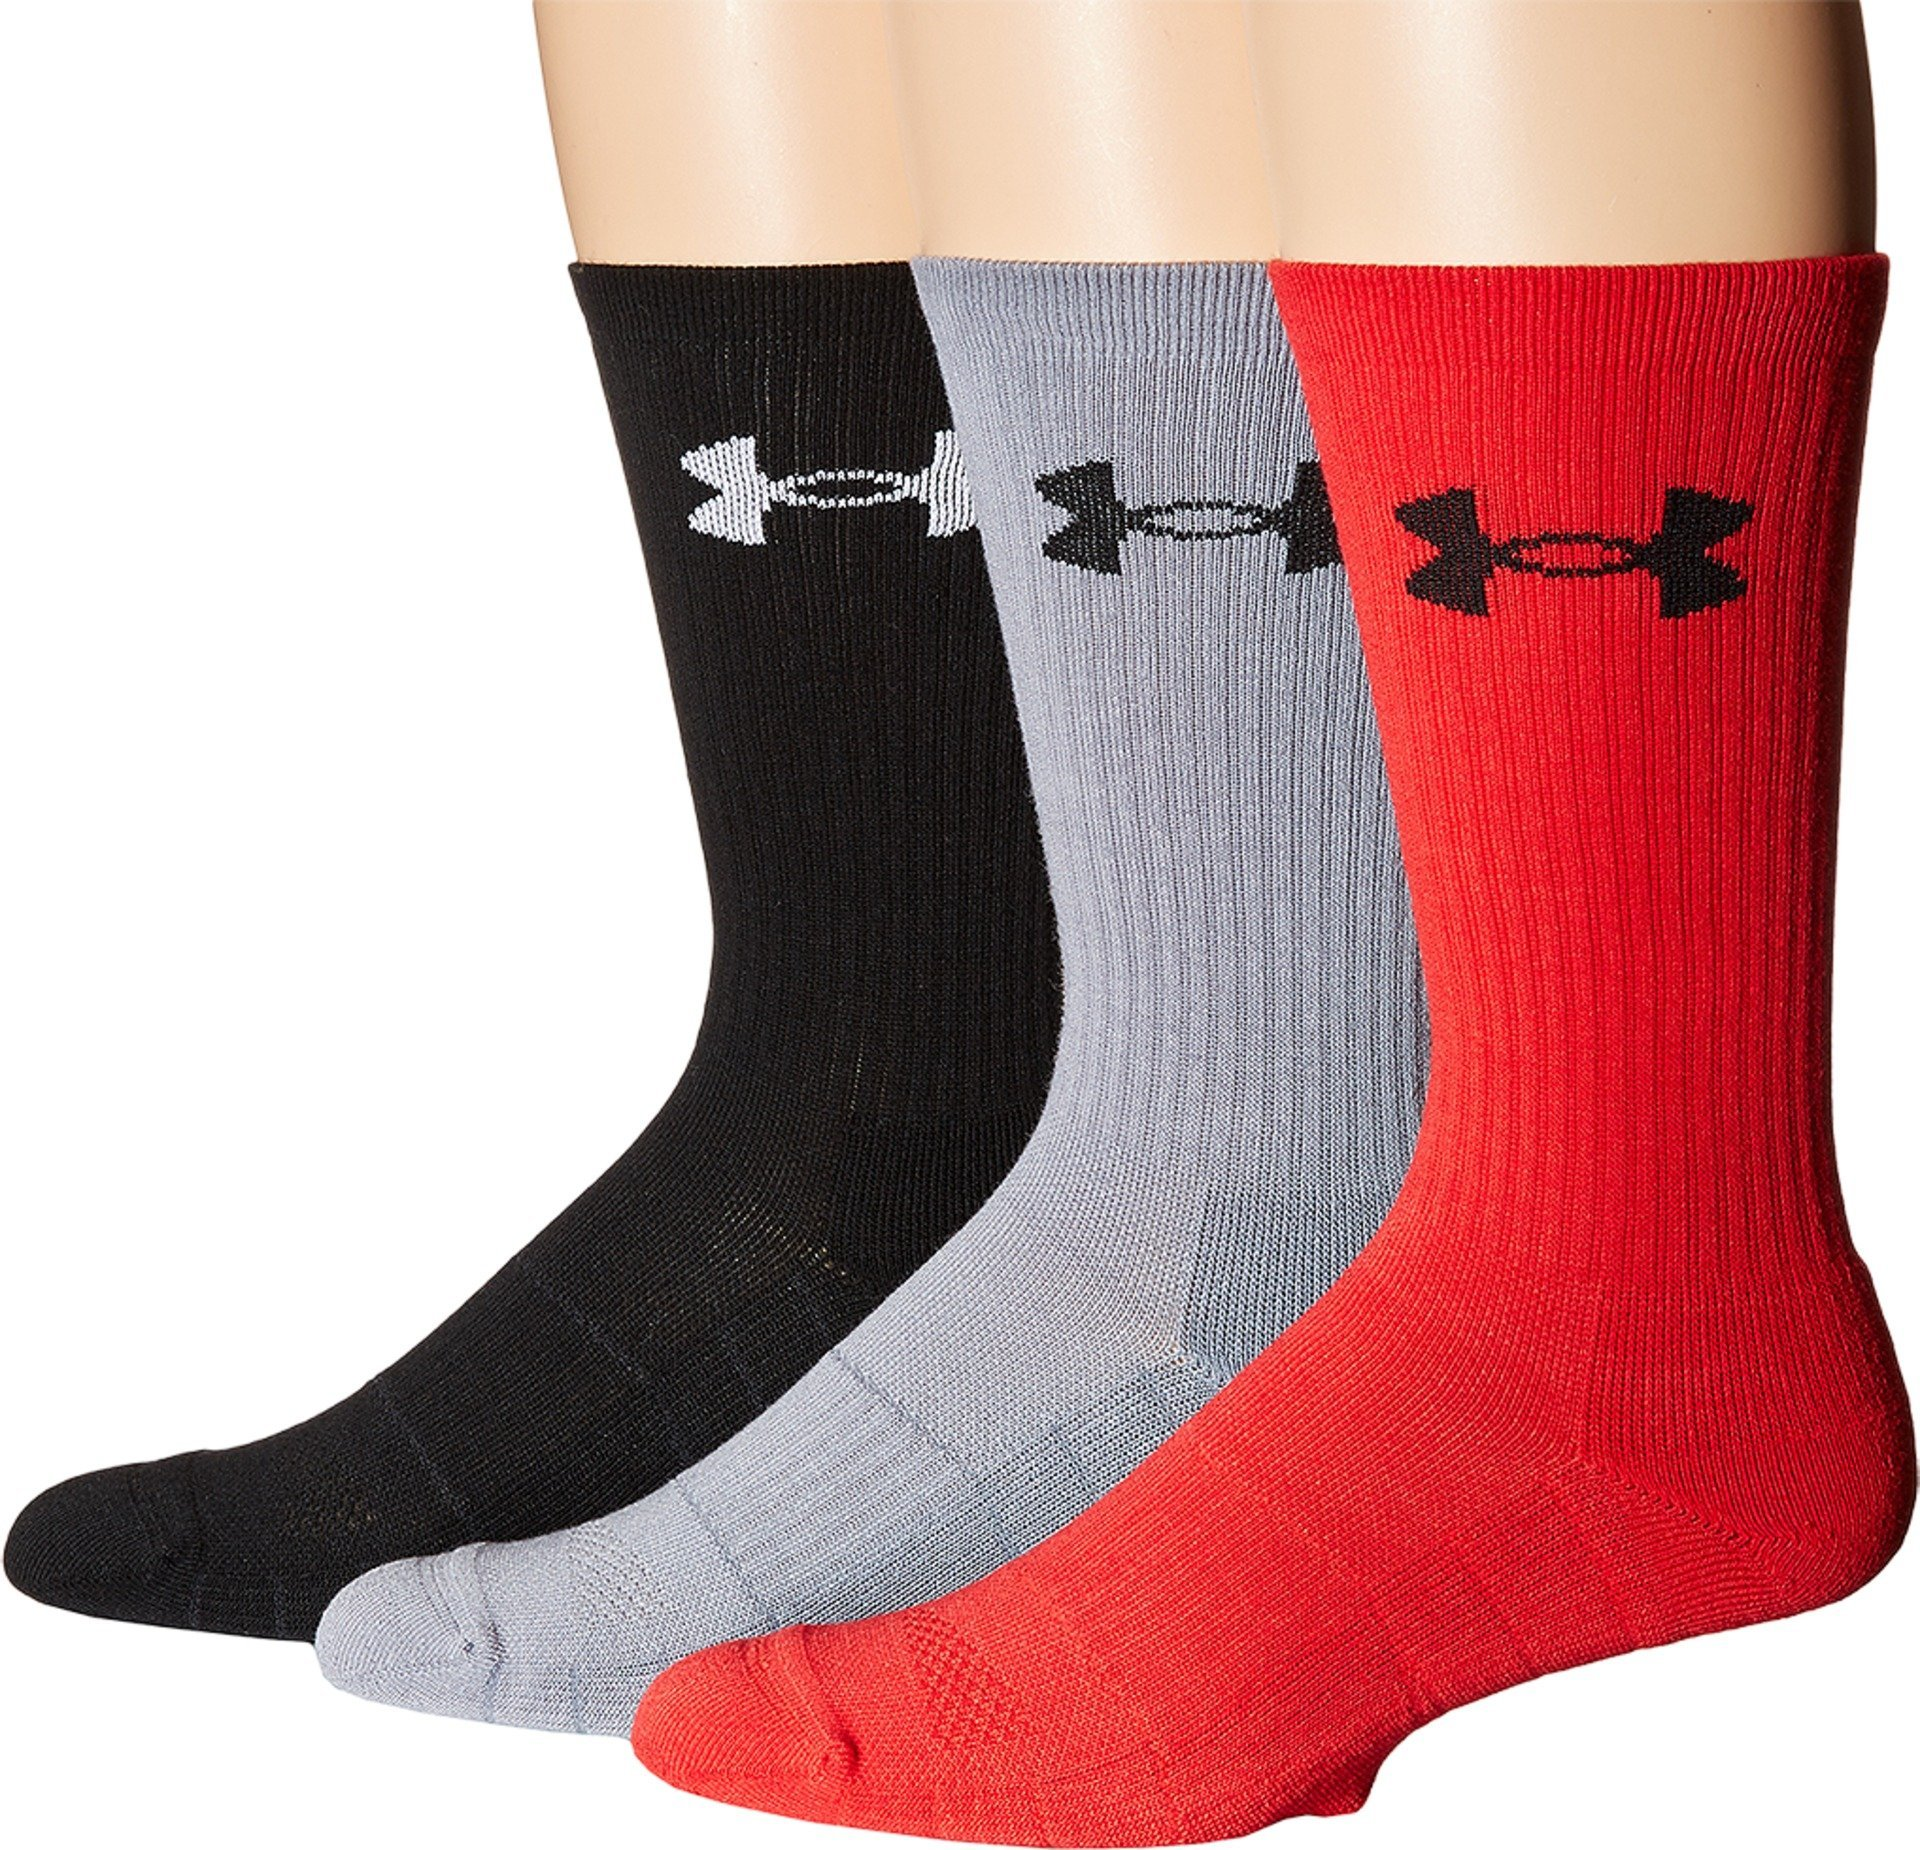 Under Armour Men's Elevated Performance Crew Socks (3 Pack), Rocket Red Assortment, Large